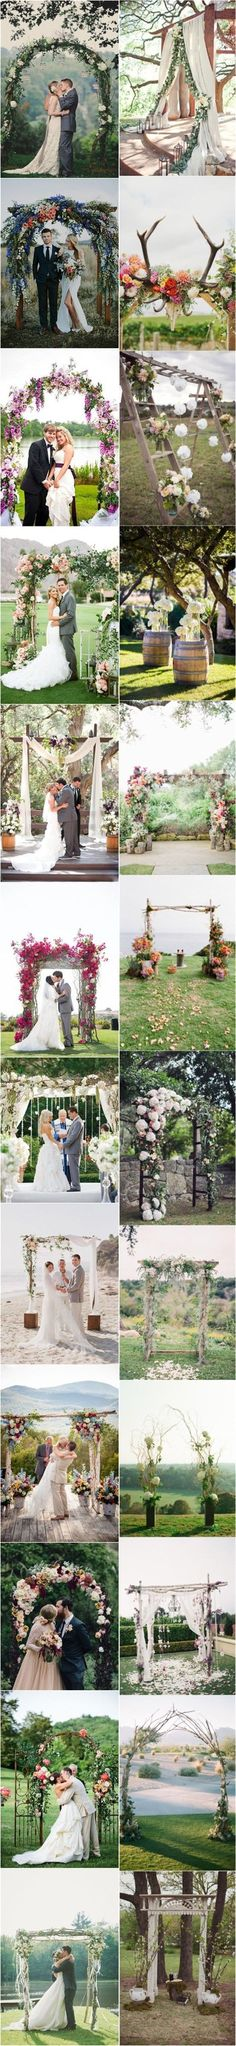 Top 25 Wedding Arch Decoration Ideas- Floral Wedding Arches the 2 ladders are perfect Floral Wedding, Diy Wedding, Rustic Wedding, Wedding Flowers, Dream Wedding, Wedding Day, Sage Wedding, Wedding Altars, Wedding Ceremony